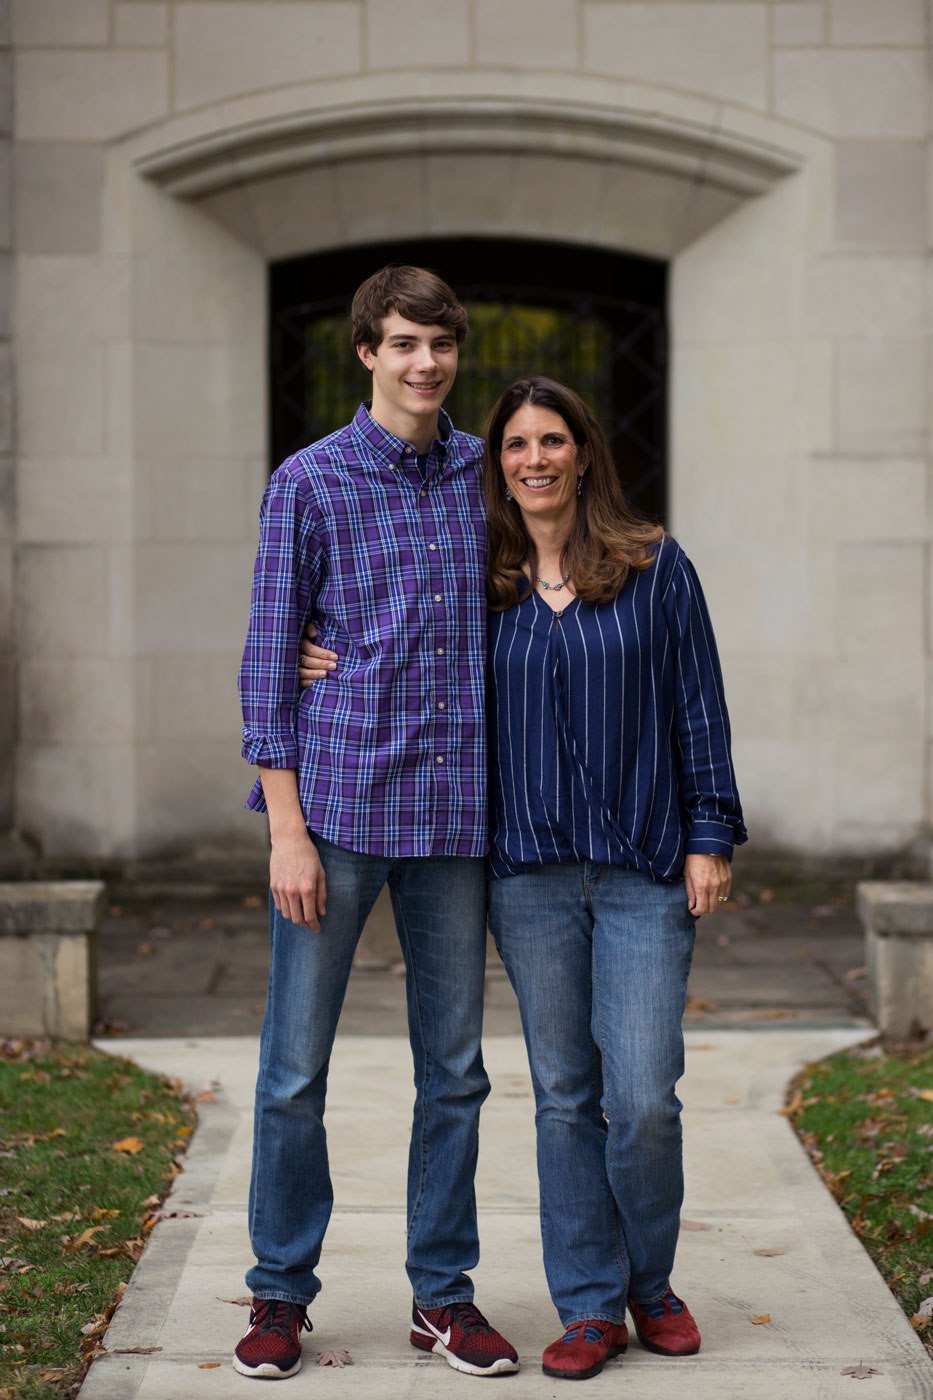 daniel_hoevener_cory_woodruff_senior_portraits_mother_son.jpg